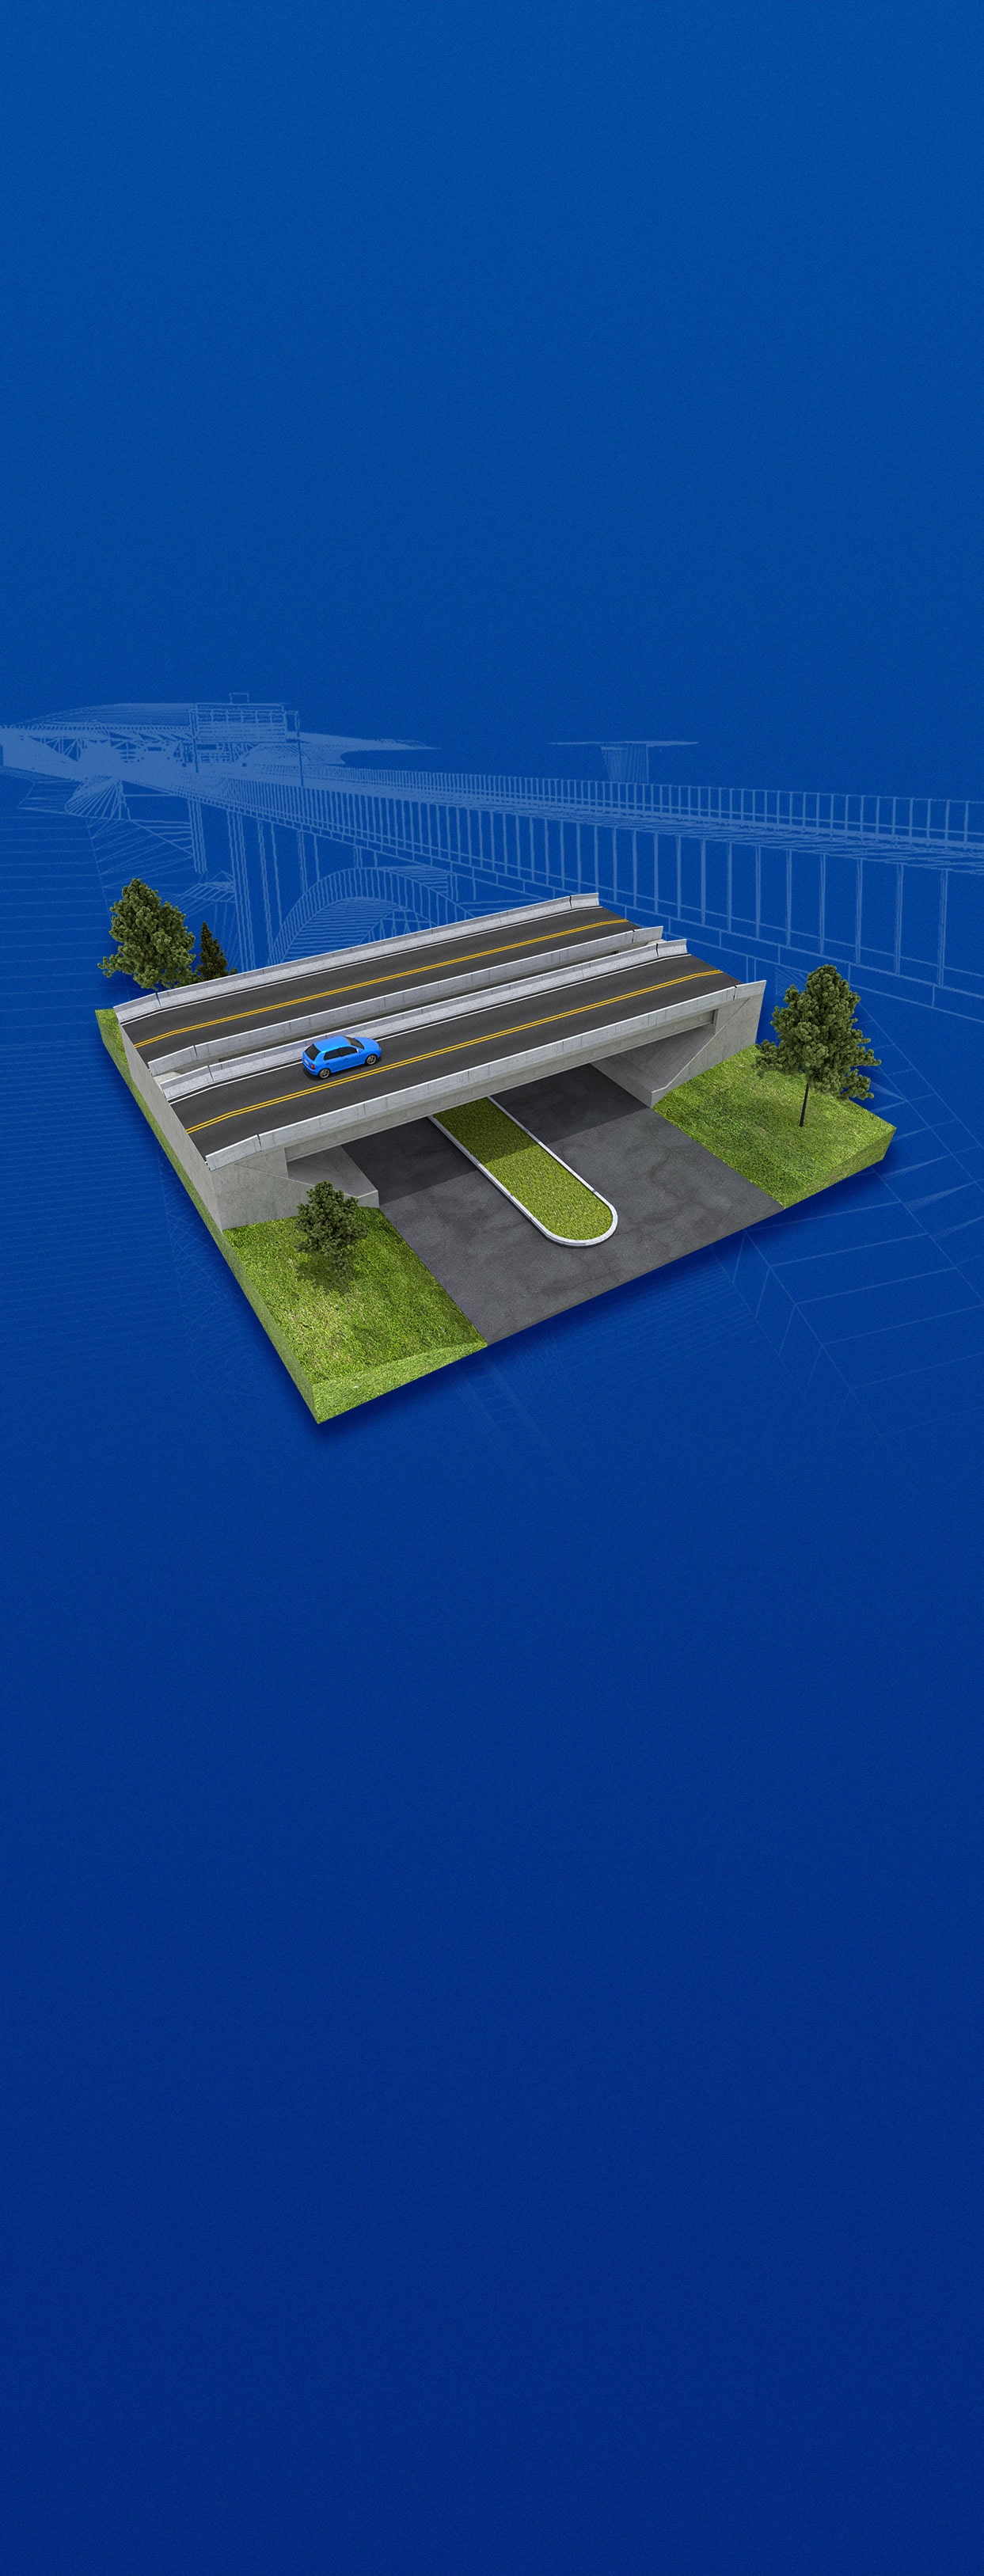 Realistic depiction of the planned D3 motorway in 3D